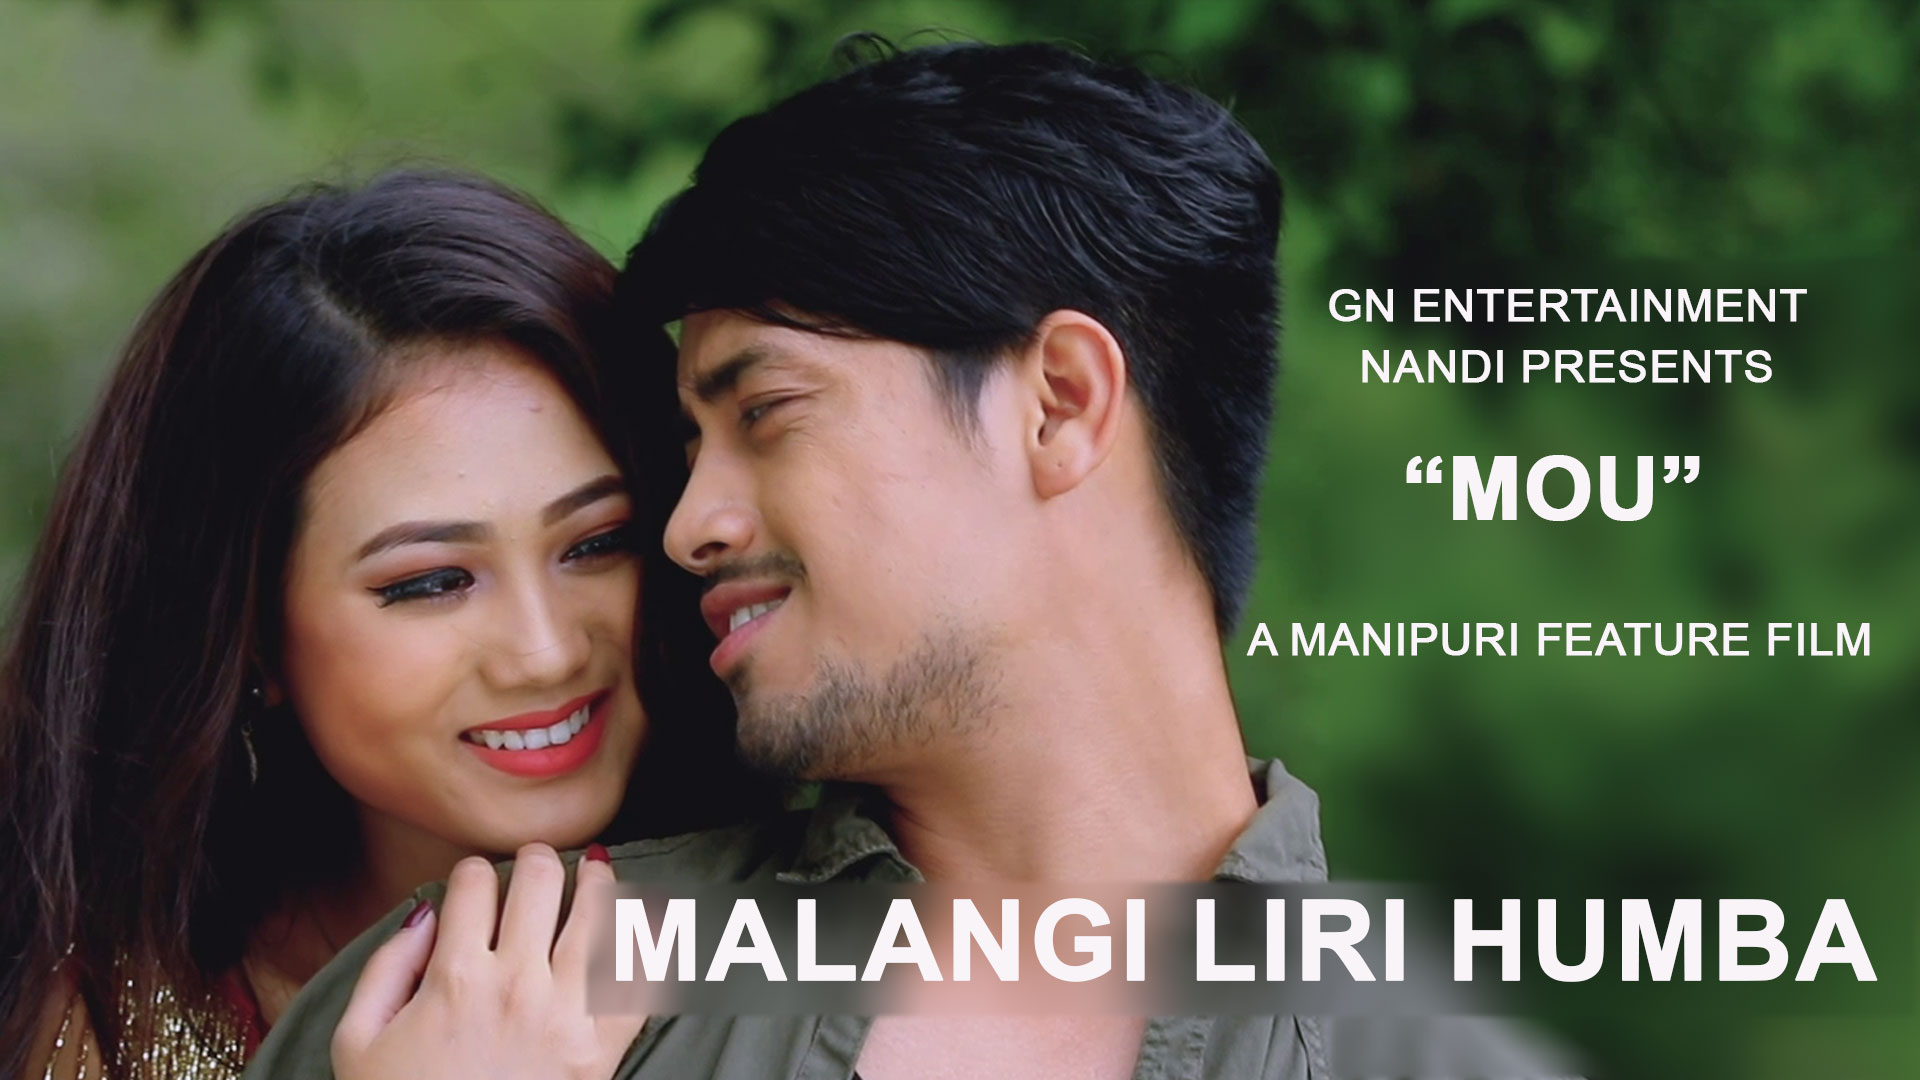 MALANGI LIRI HUMBA | Official Mou Movie Song Release